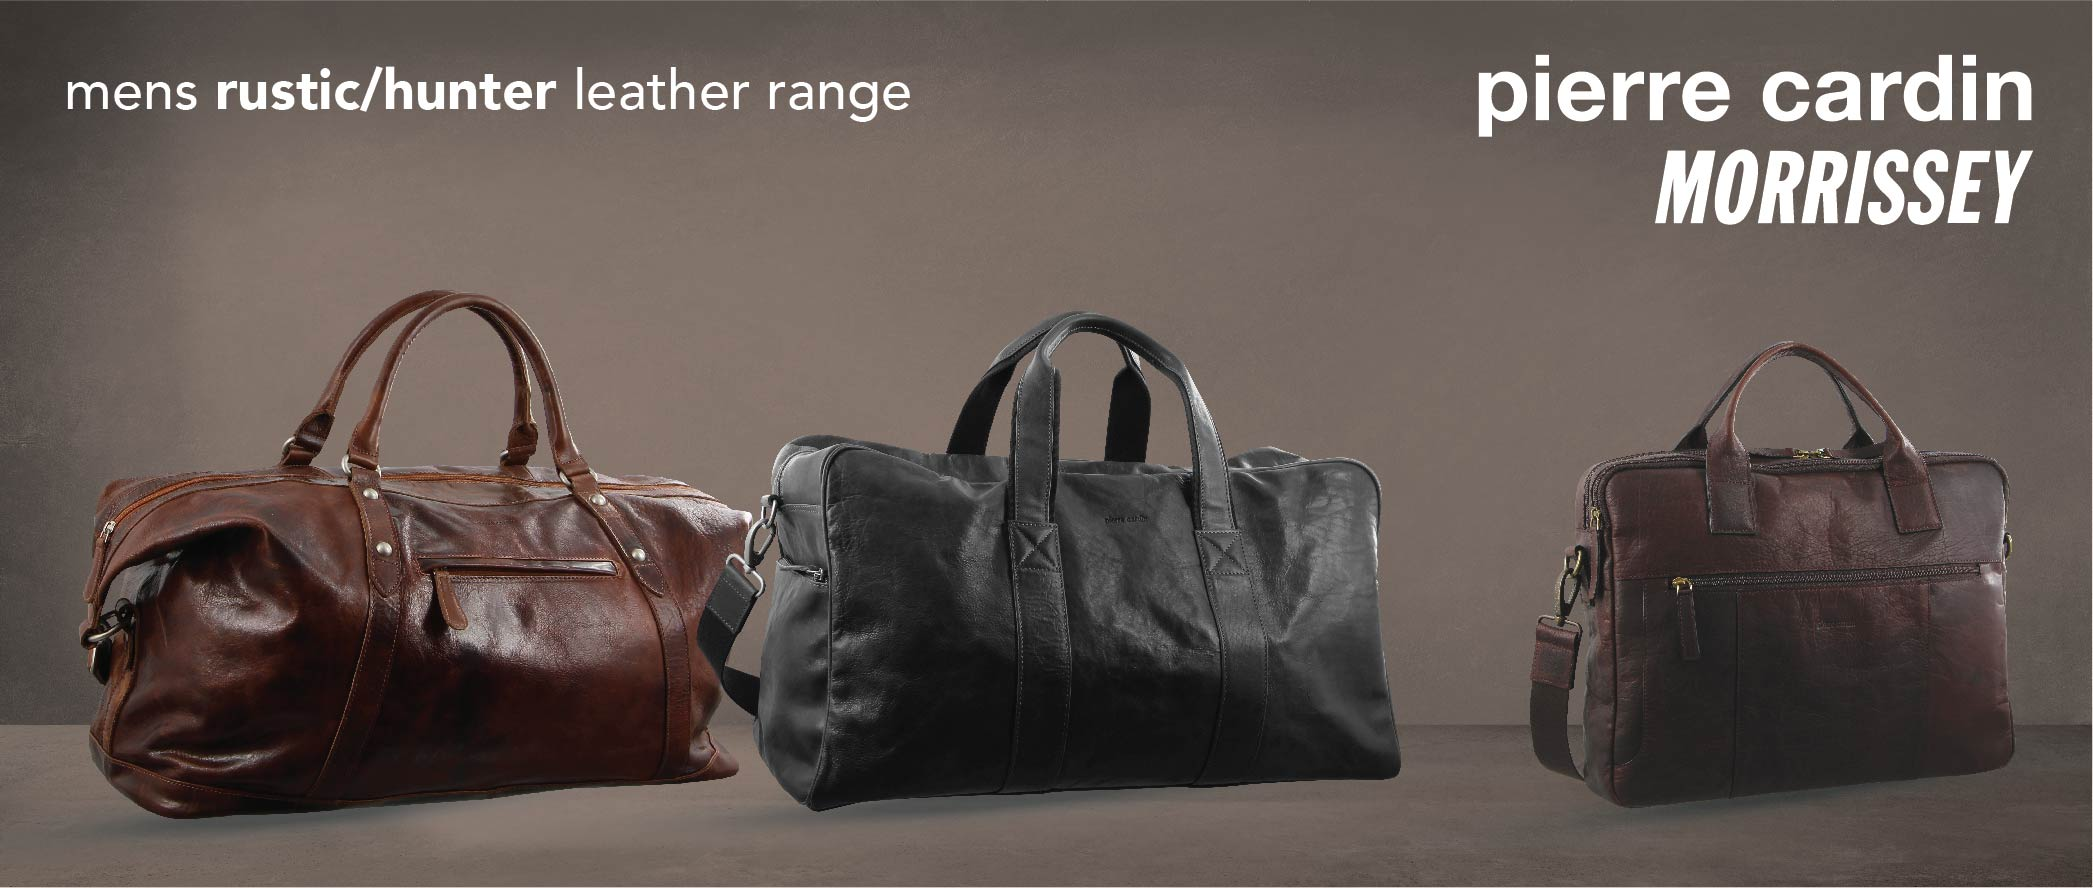 hunter-rustic-leather-range-09.jpg